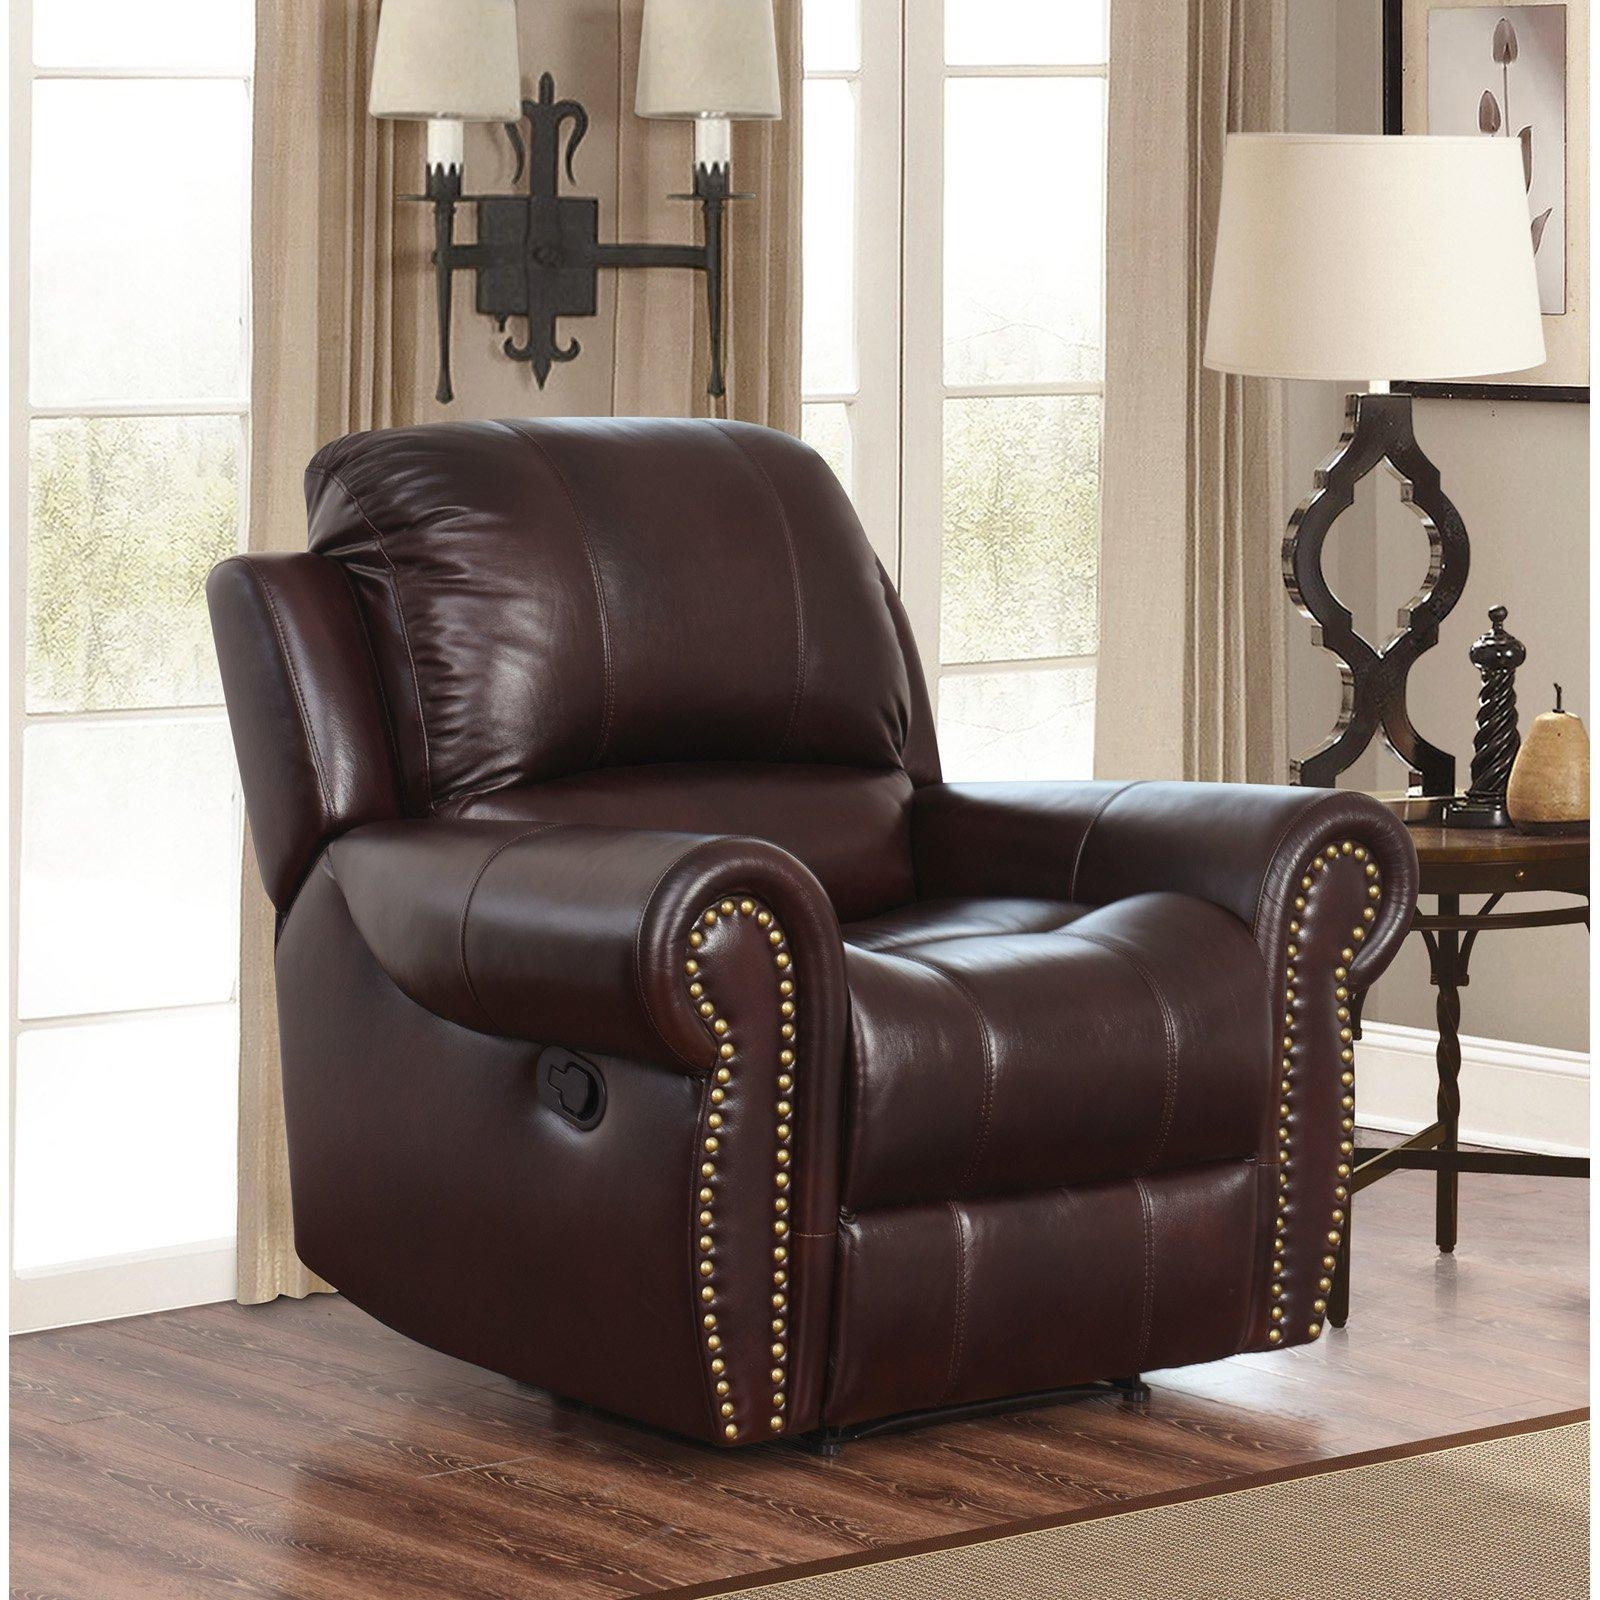 Abbyson Hogan Italian Leather Reclining Chair With Nailheads Throughout Abbyson Recliners (View 7 of 20)